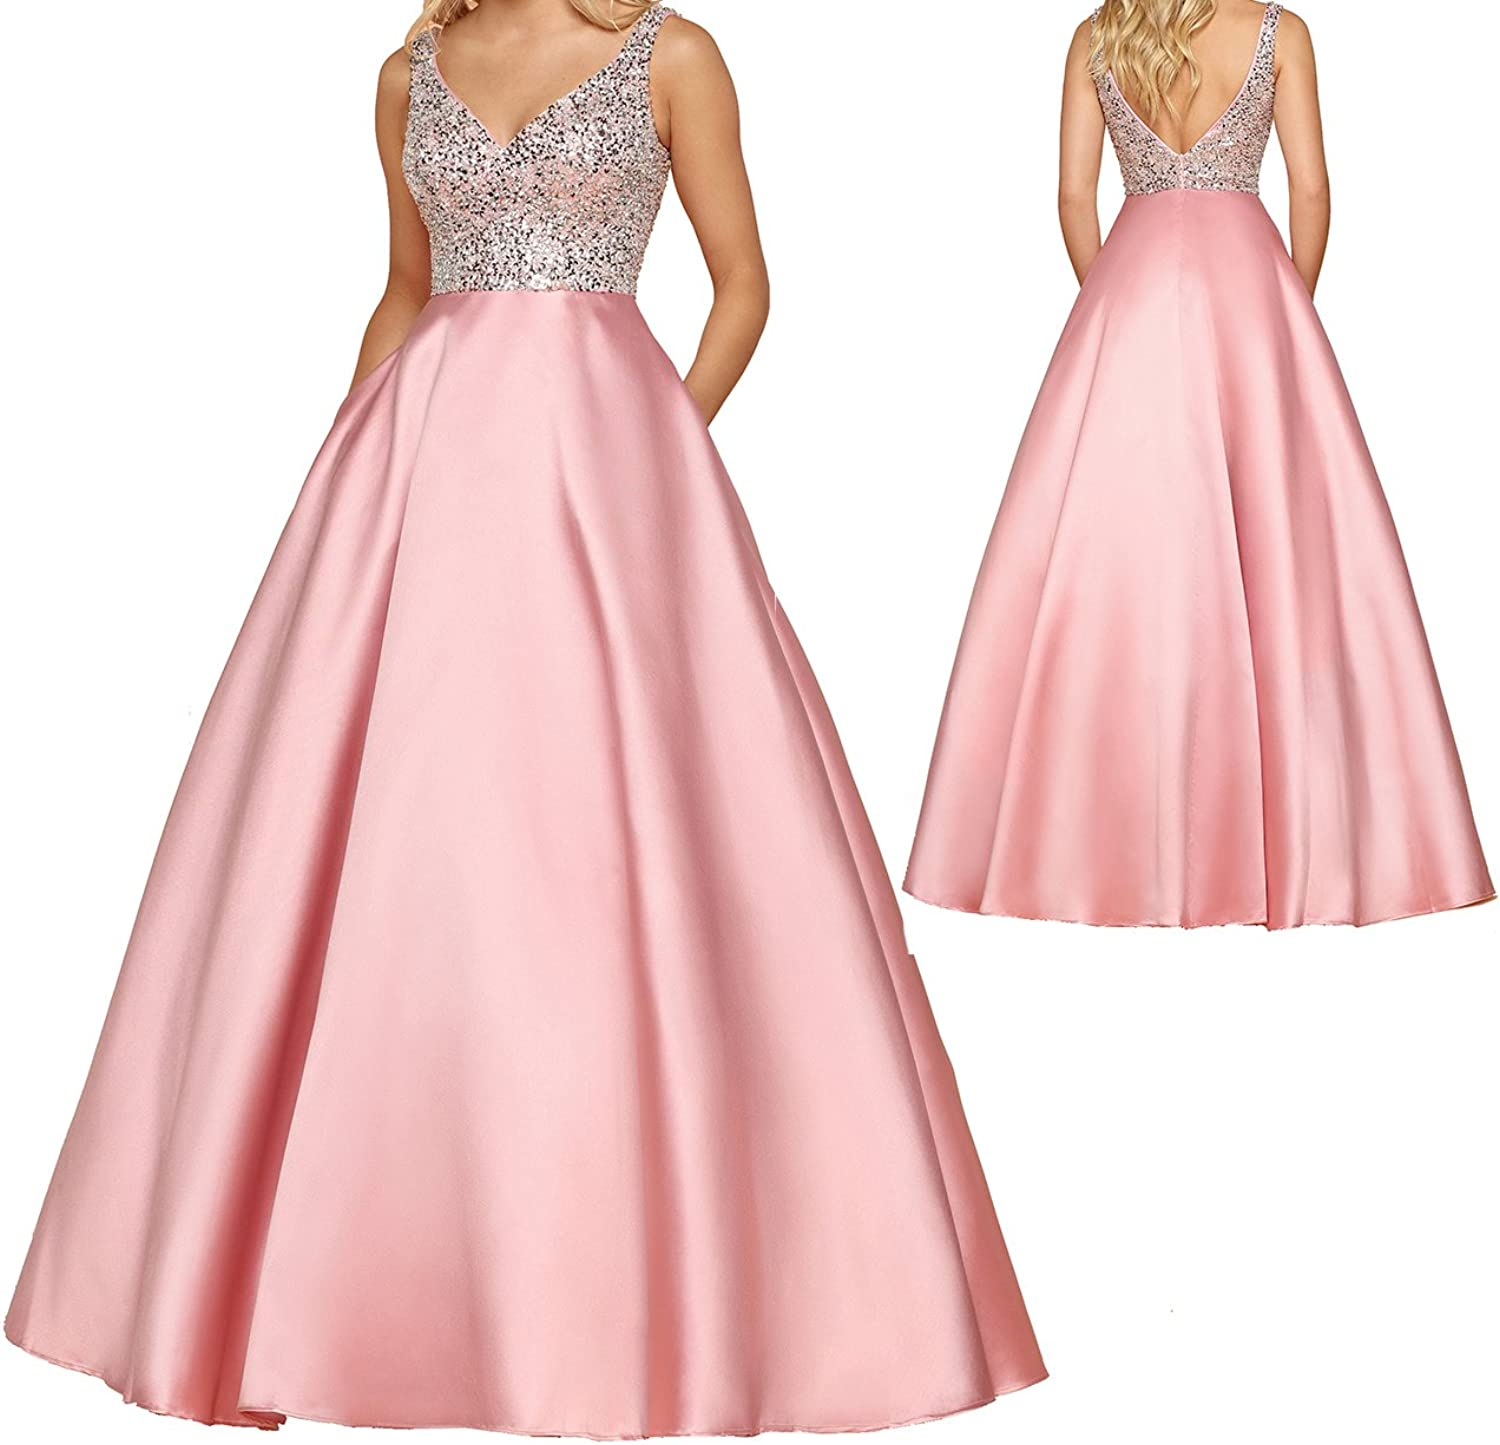 Caterinasara Women Pink Floral Formal Dress Prom Evening for Juniors Wedding Girls Gown